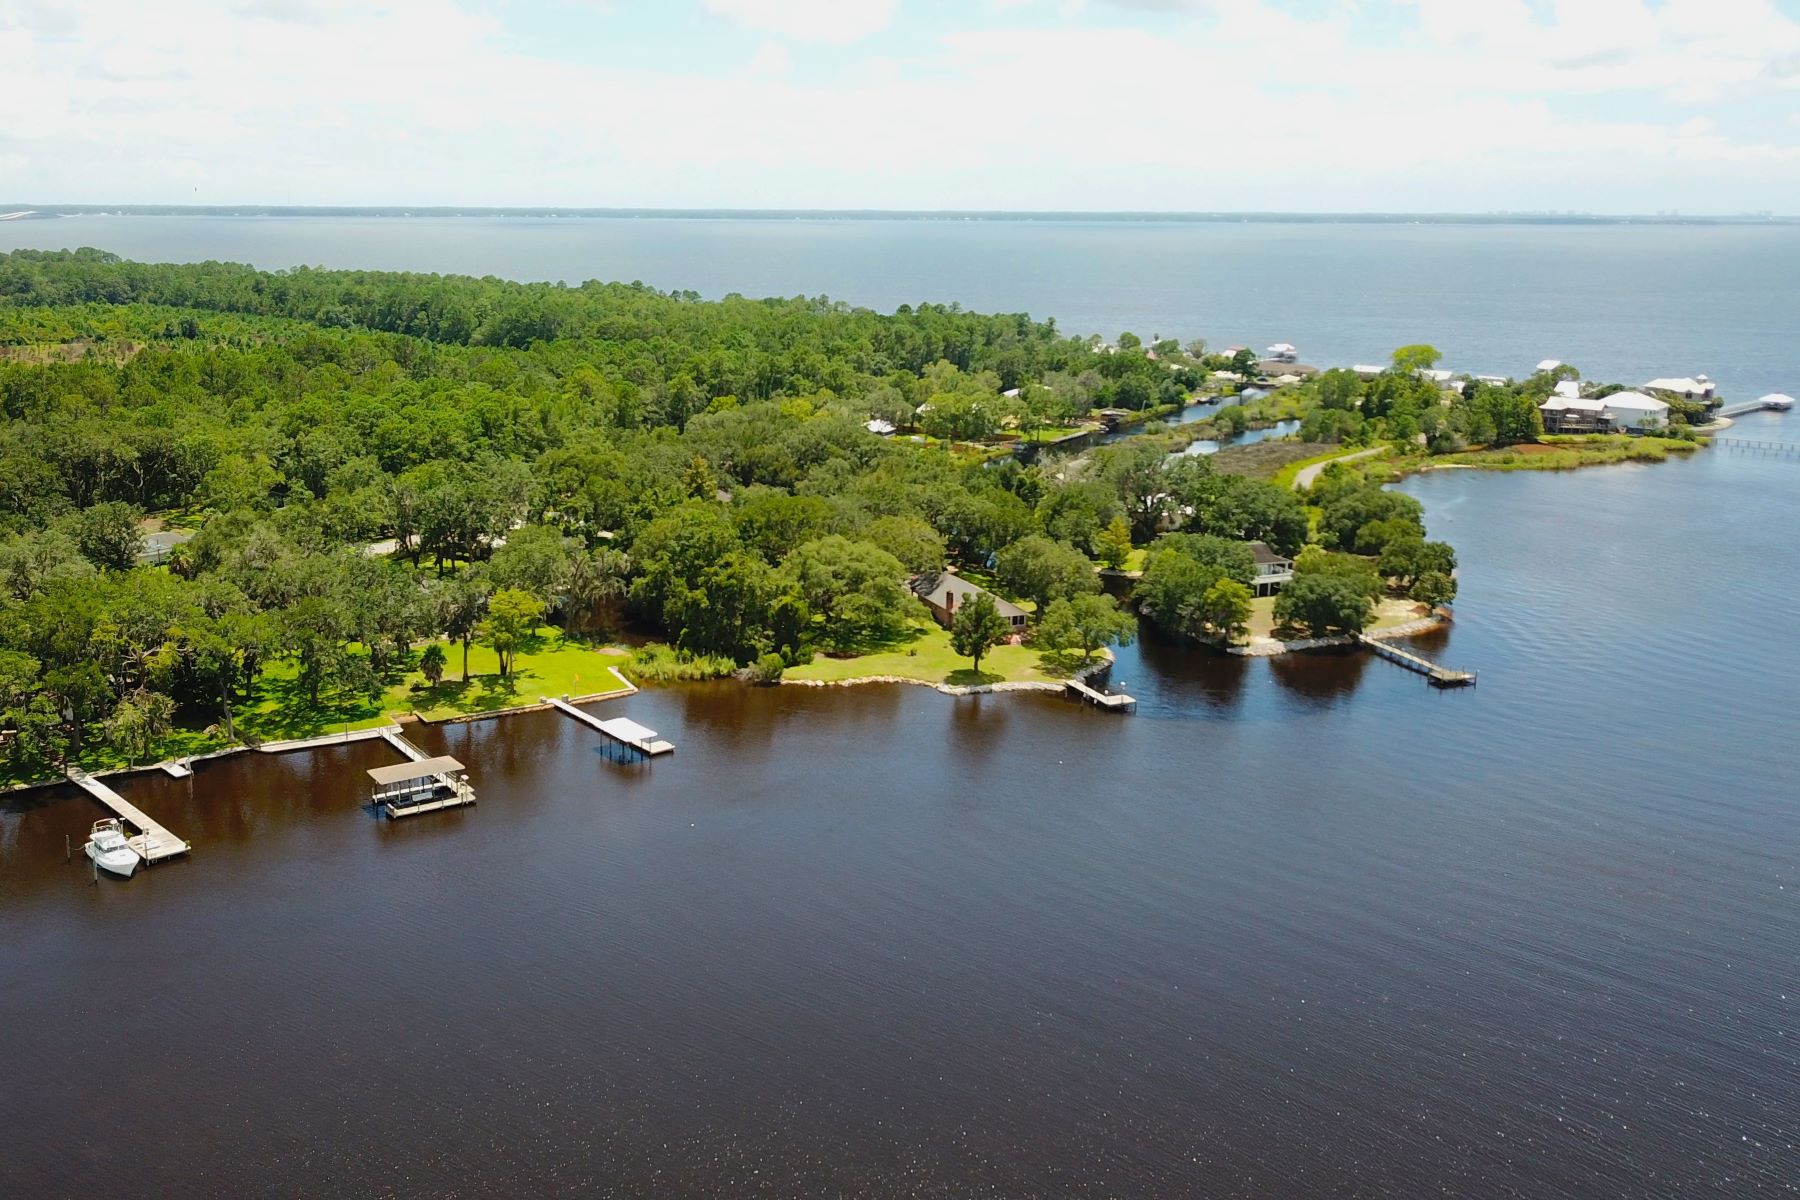 Terreno para Venda às Large Waterfront Homesite with Boat House 1358 Bay Grove Road, Freeport, Florida 32439 Estados Unidos